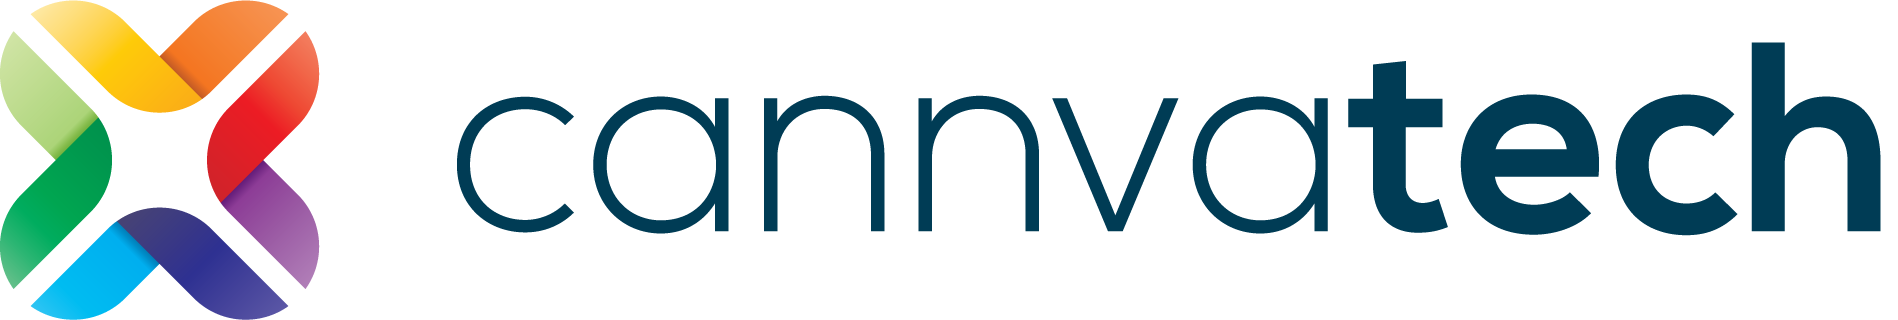 Cannvatech Logo.png